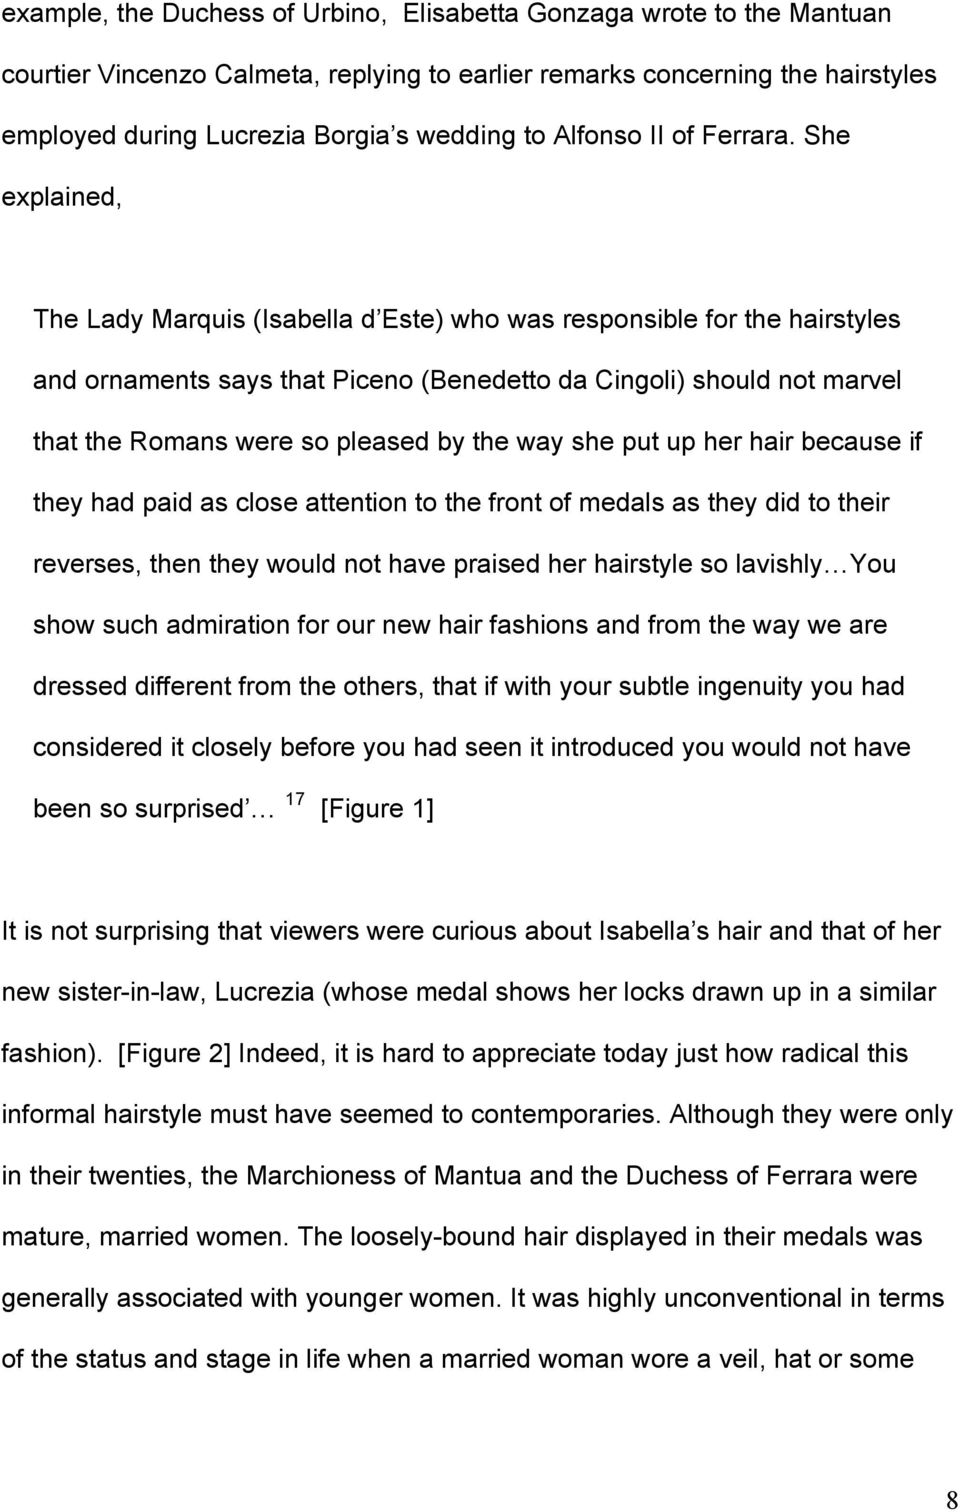 She explained, The Lady Marquis (Isabella d Este) who was responsible for the hairstyles and ornaments says that Piceno (Benedetto da Cingoli) should not marvel that the Romans were so pleased by the